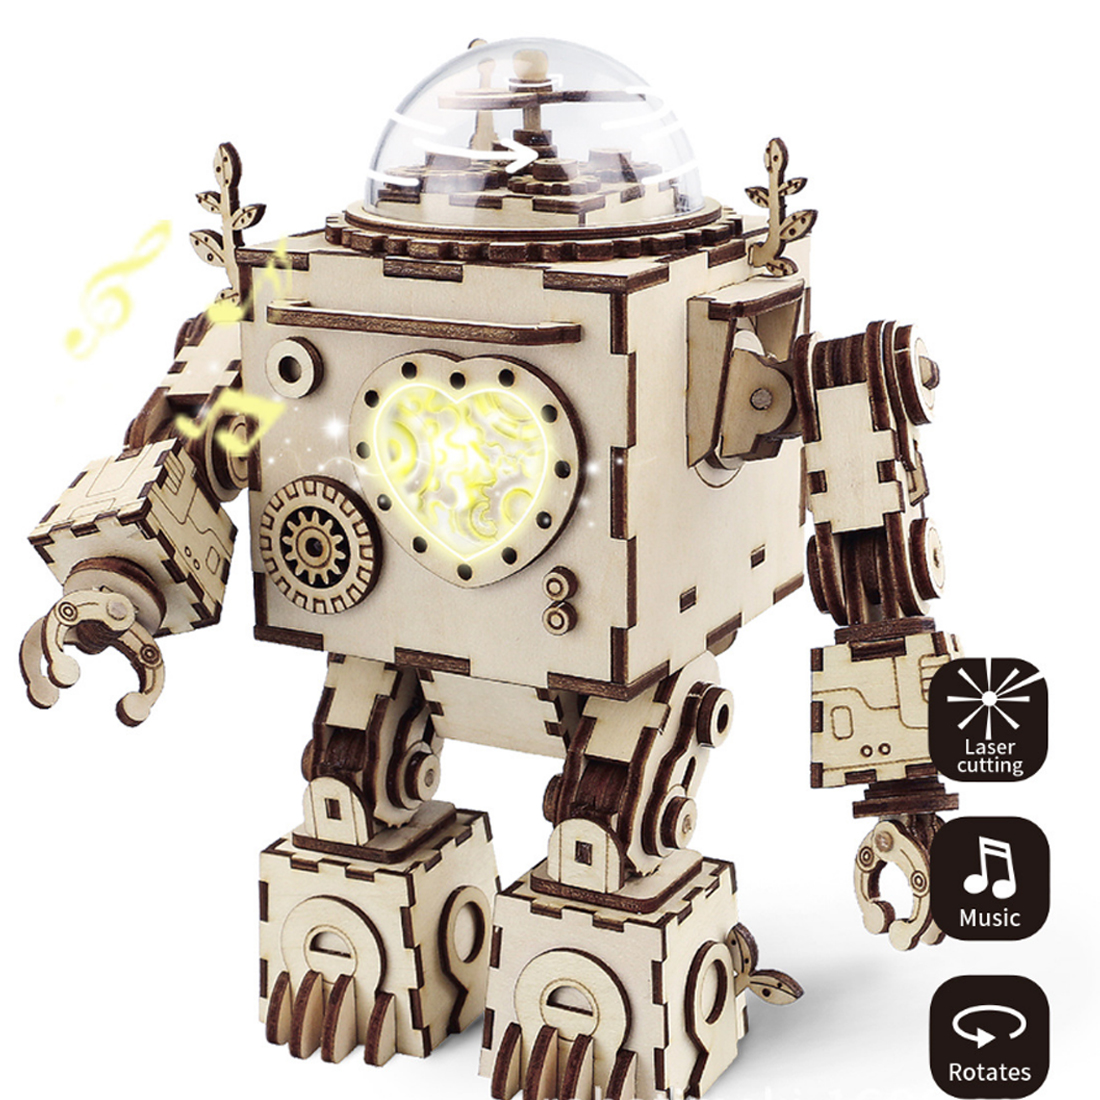 Robot Model Wooden Gear DIY 3D Puzzle Steampunk Music Box for Patience Hands on Ability Development Toys Gift for Kids